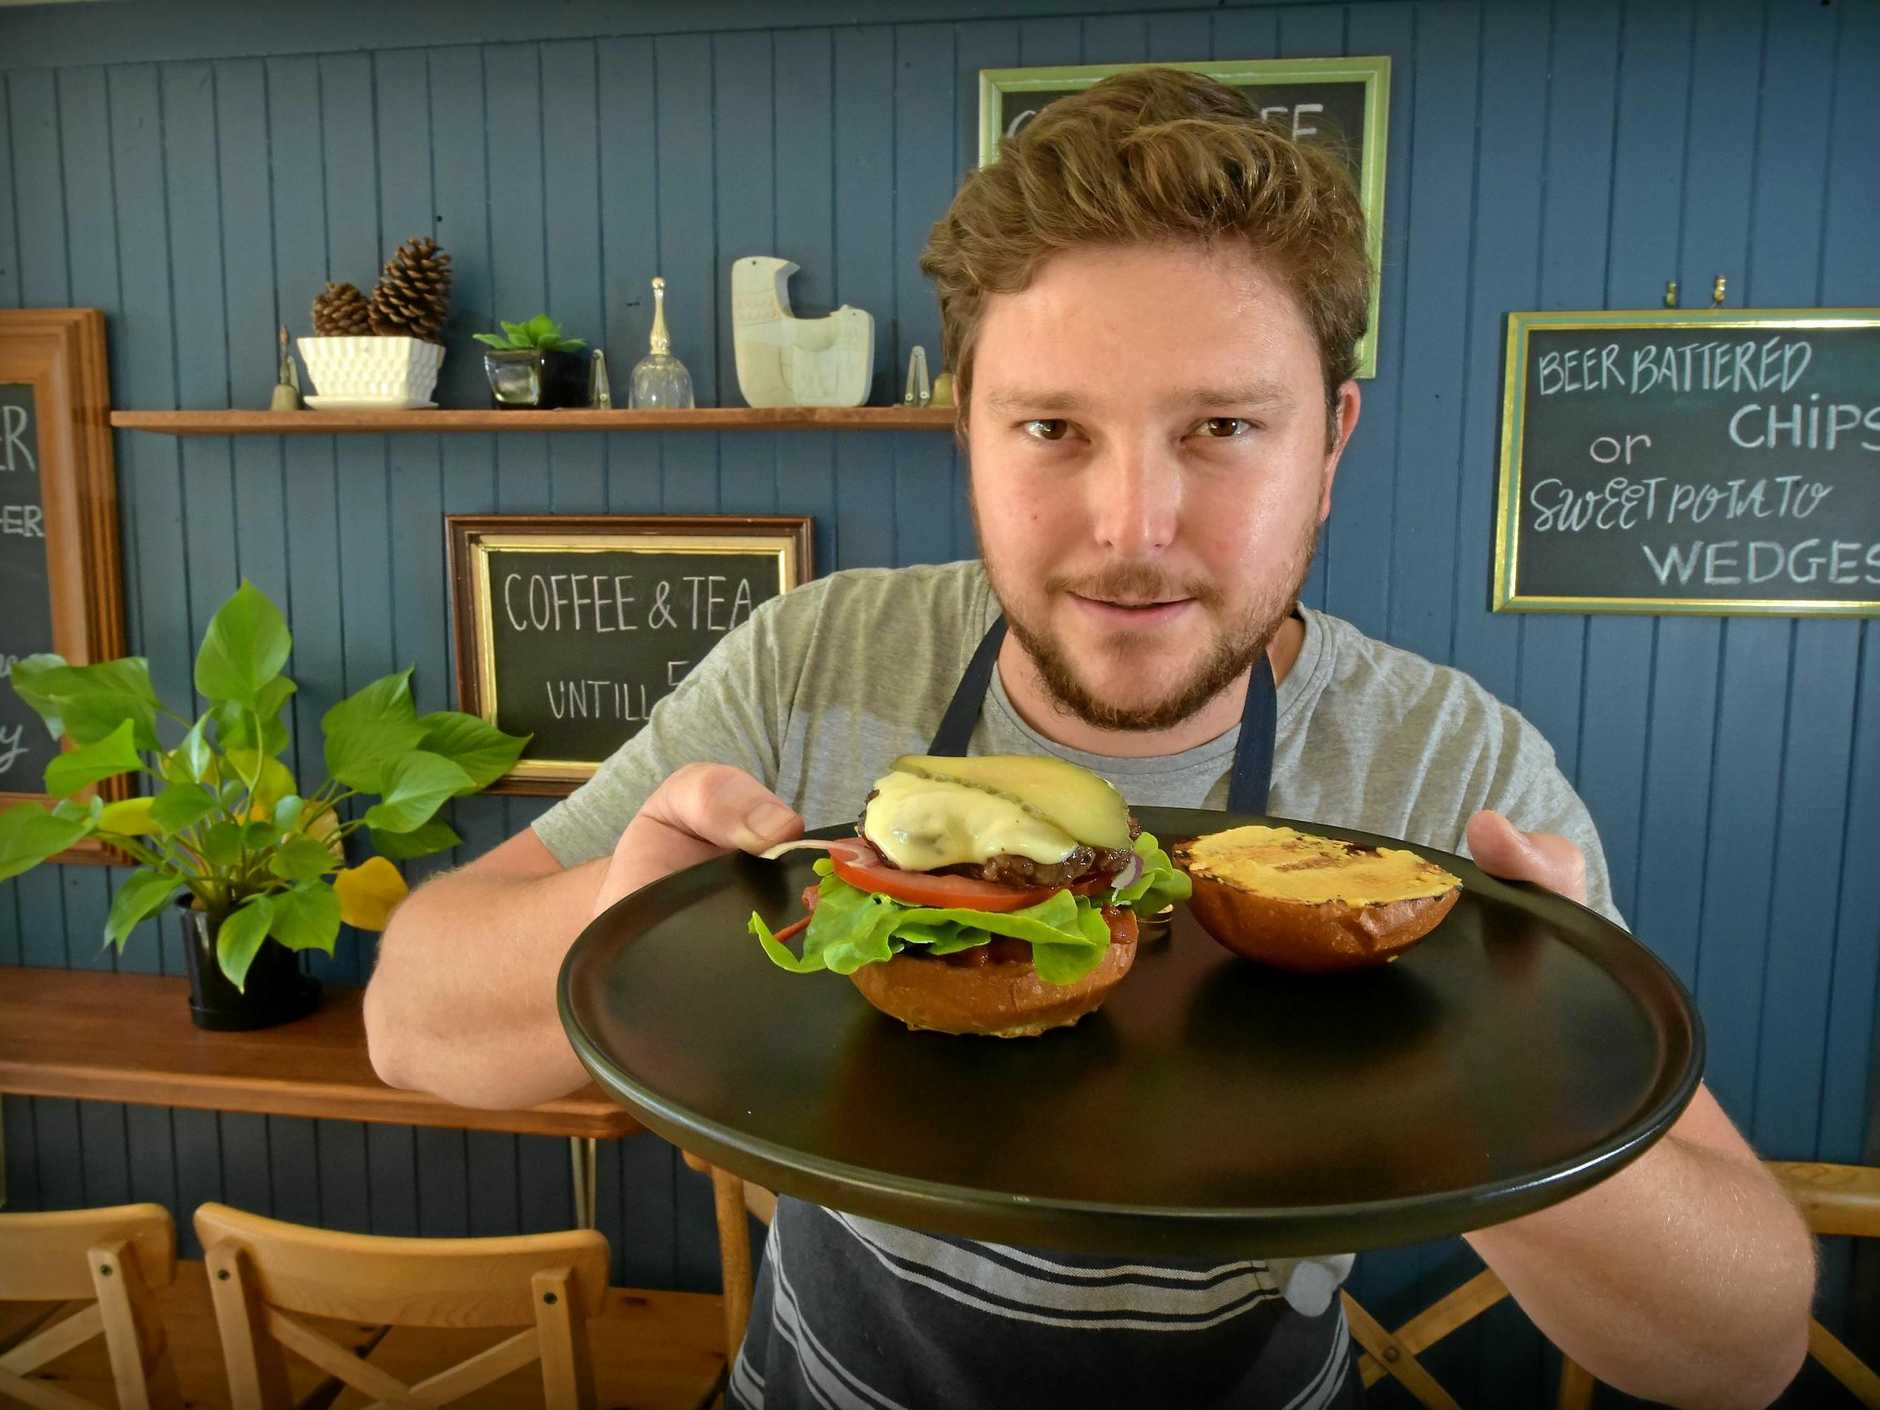 Shalom Persal from the 'Spicy Butter' says the Buderim locals love his burgers, back in August 2017.